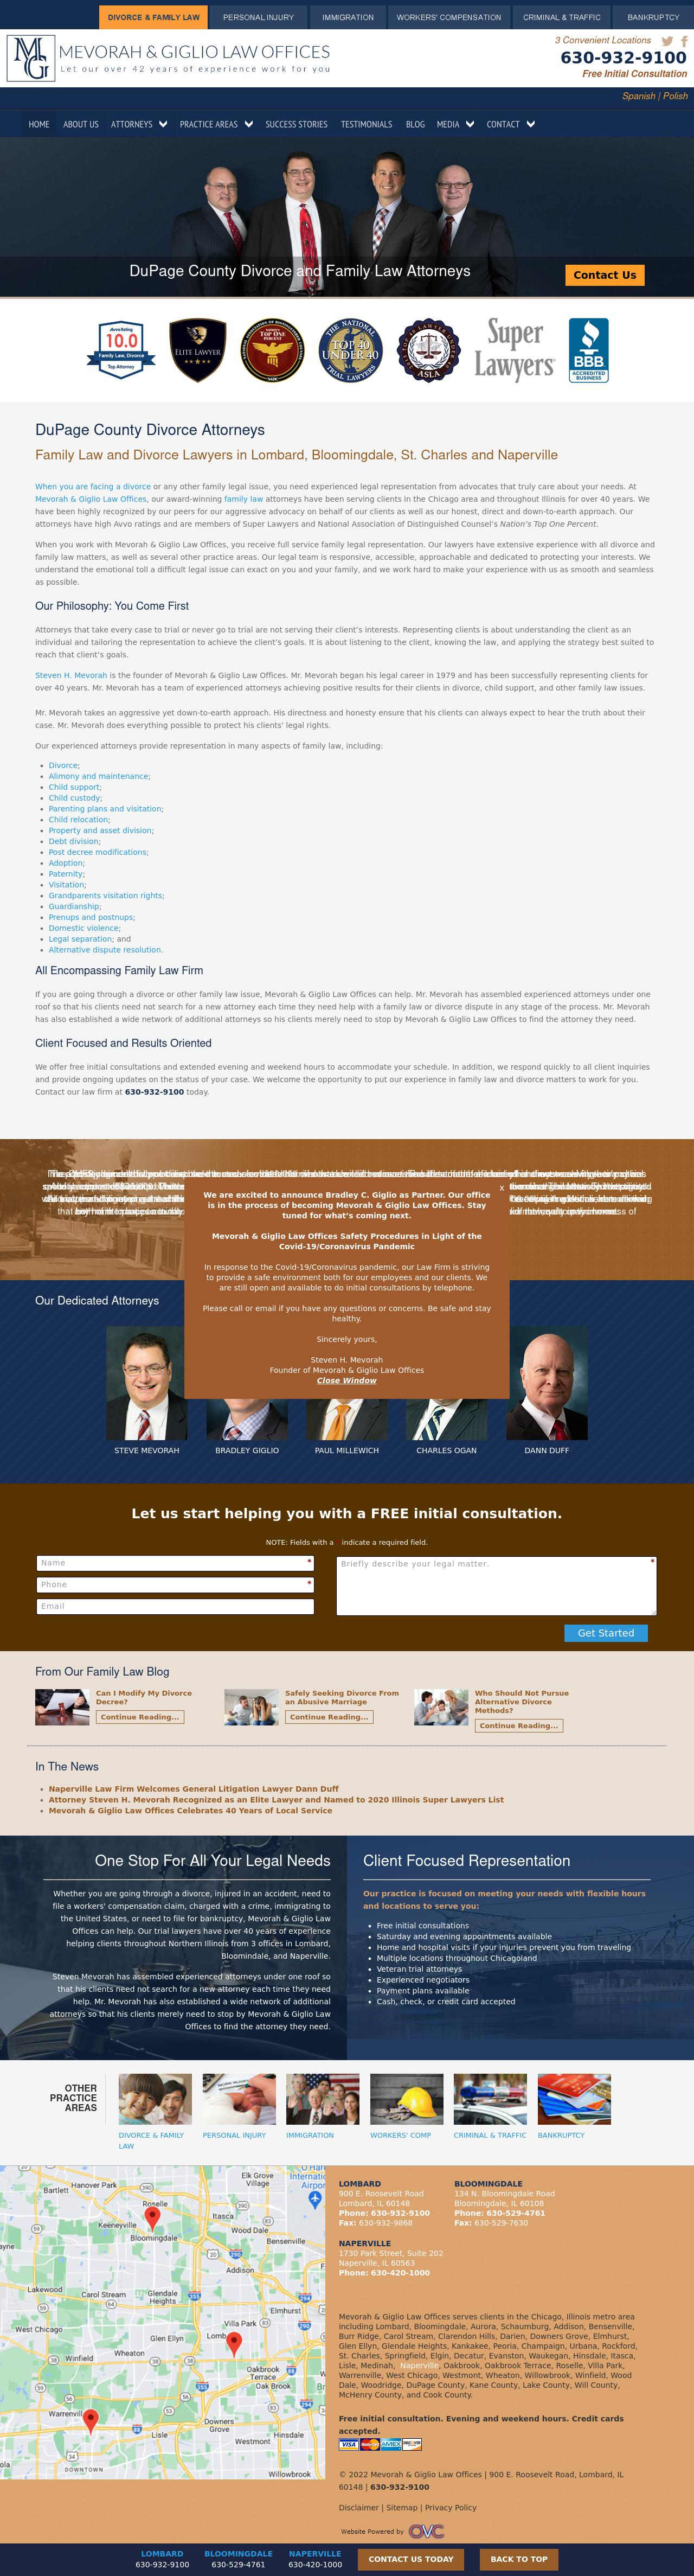 Mevorah Law Offices LLC - Joliet IL Lawyers